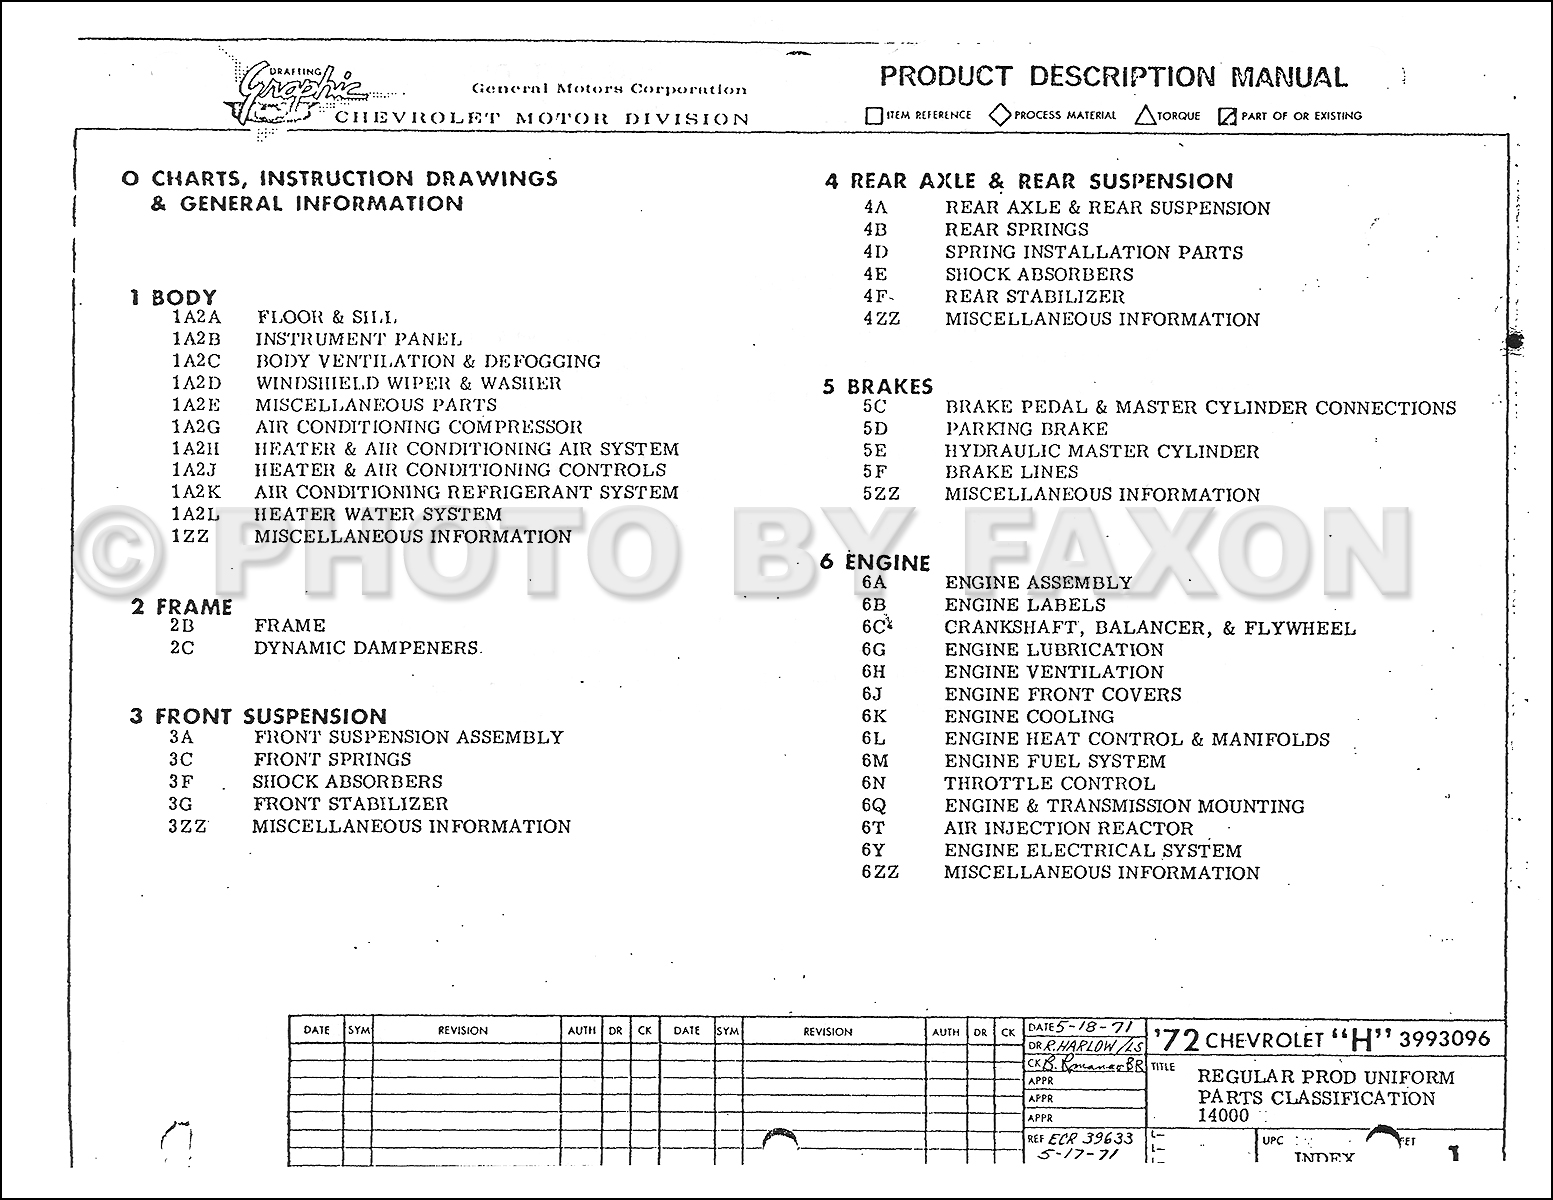 1972 Chevrolet Vega Factory Assembly Manual Reprint